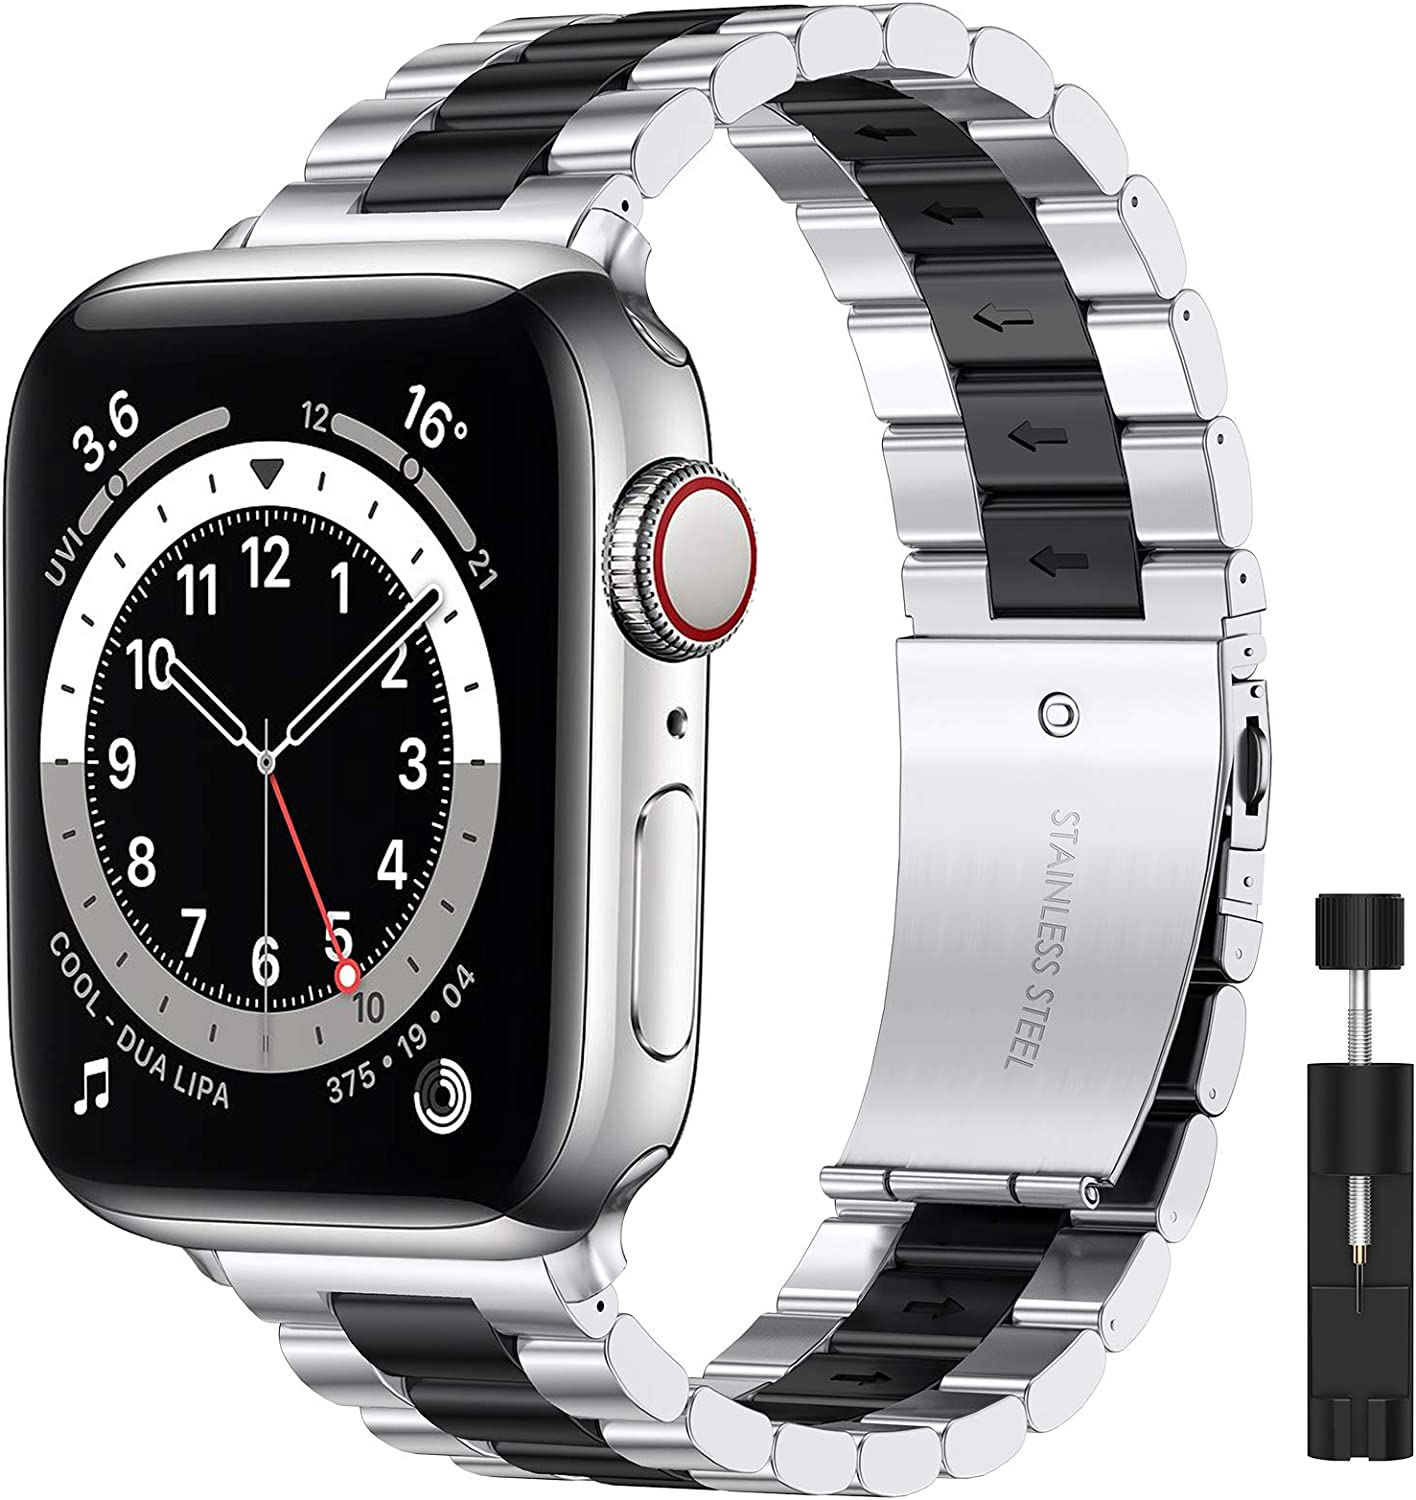 Liwin Metal Band Compatible with Apple Watch Series SE/6/5/4/3/2/1, Series 6 Band for Men Women, Replacement Steel Business Bracelet Wrist Strap Accessory for iWatch Band (42mm/44mm, Silver&Black)